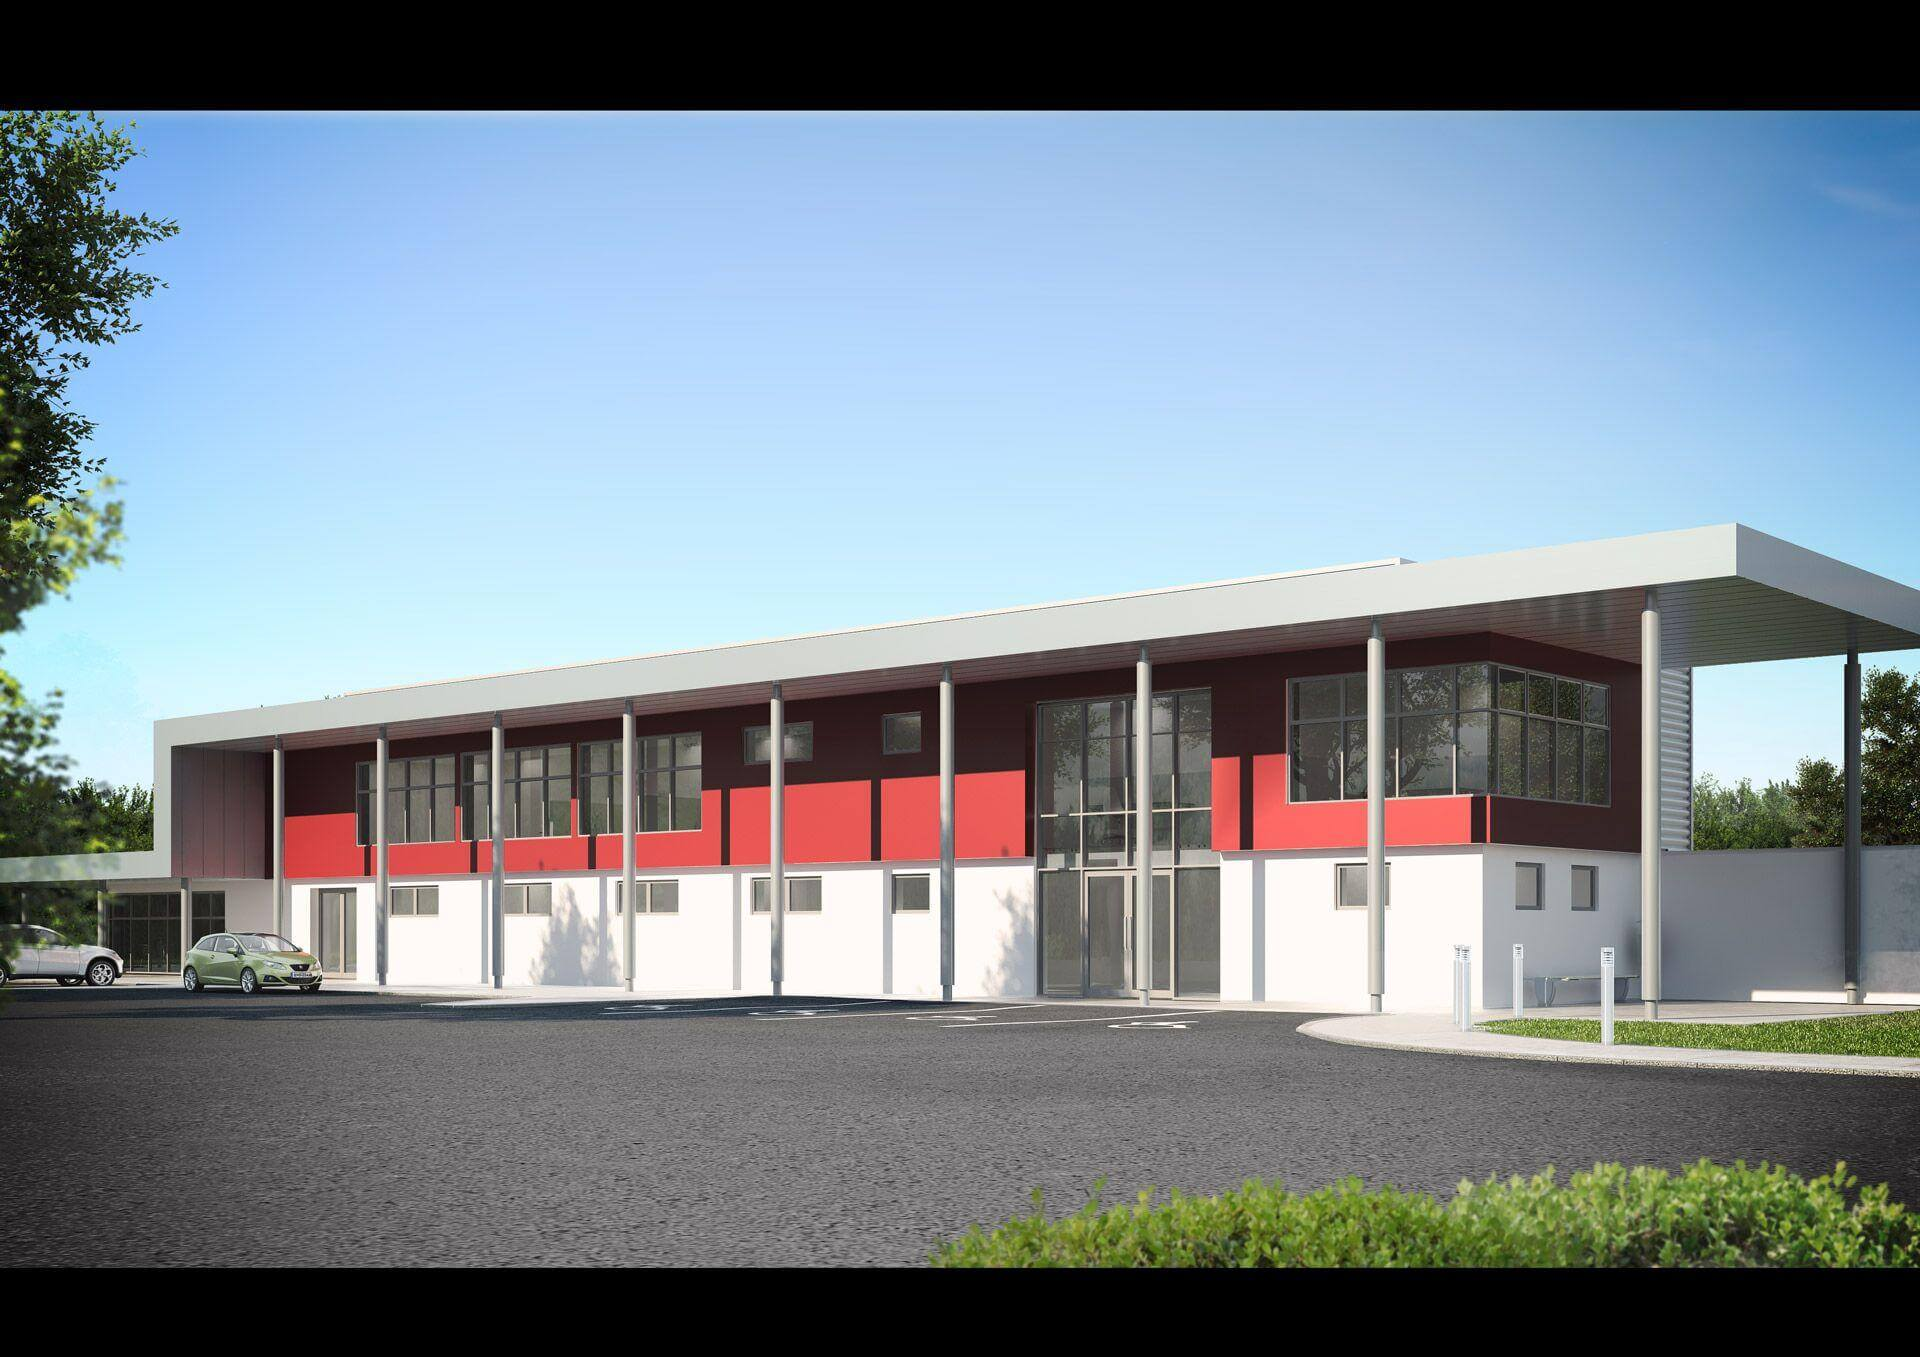 Façade of light industrial building with overhanging double height canopy supported off grey colonnade with red accent wall to first floor office area.